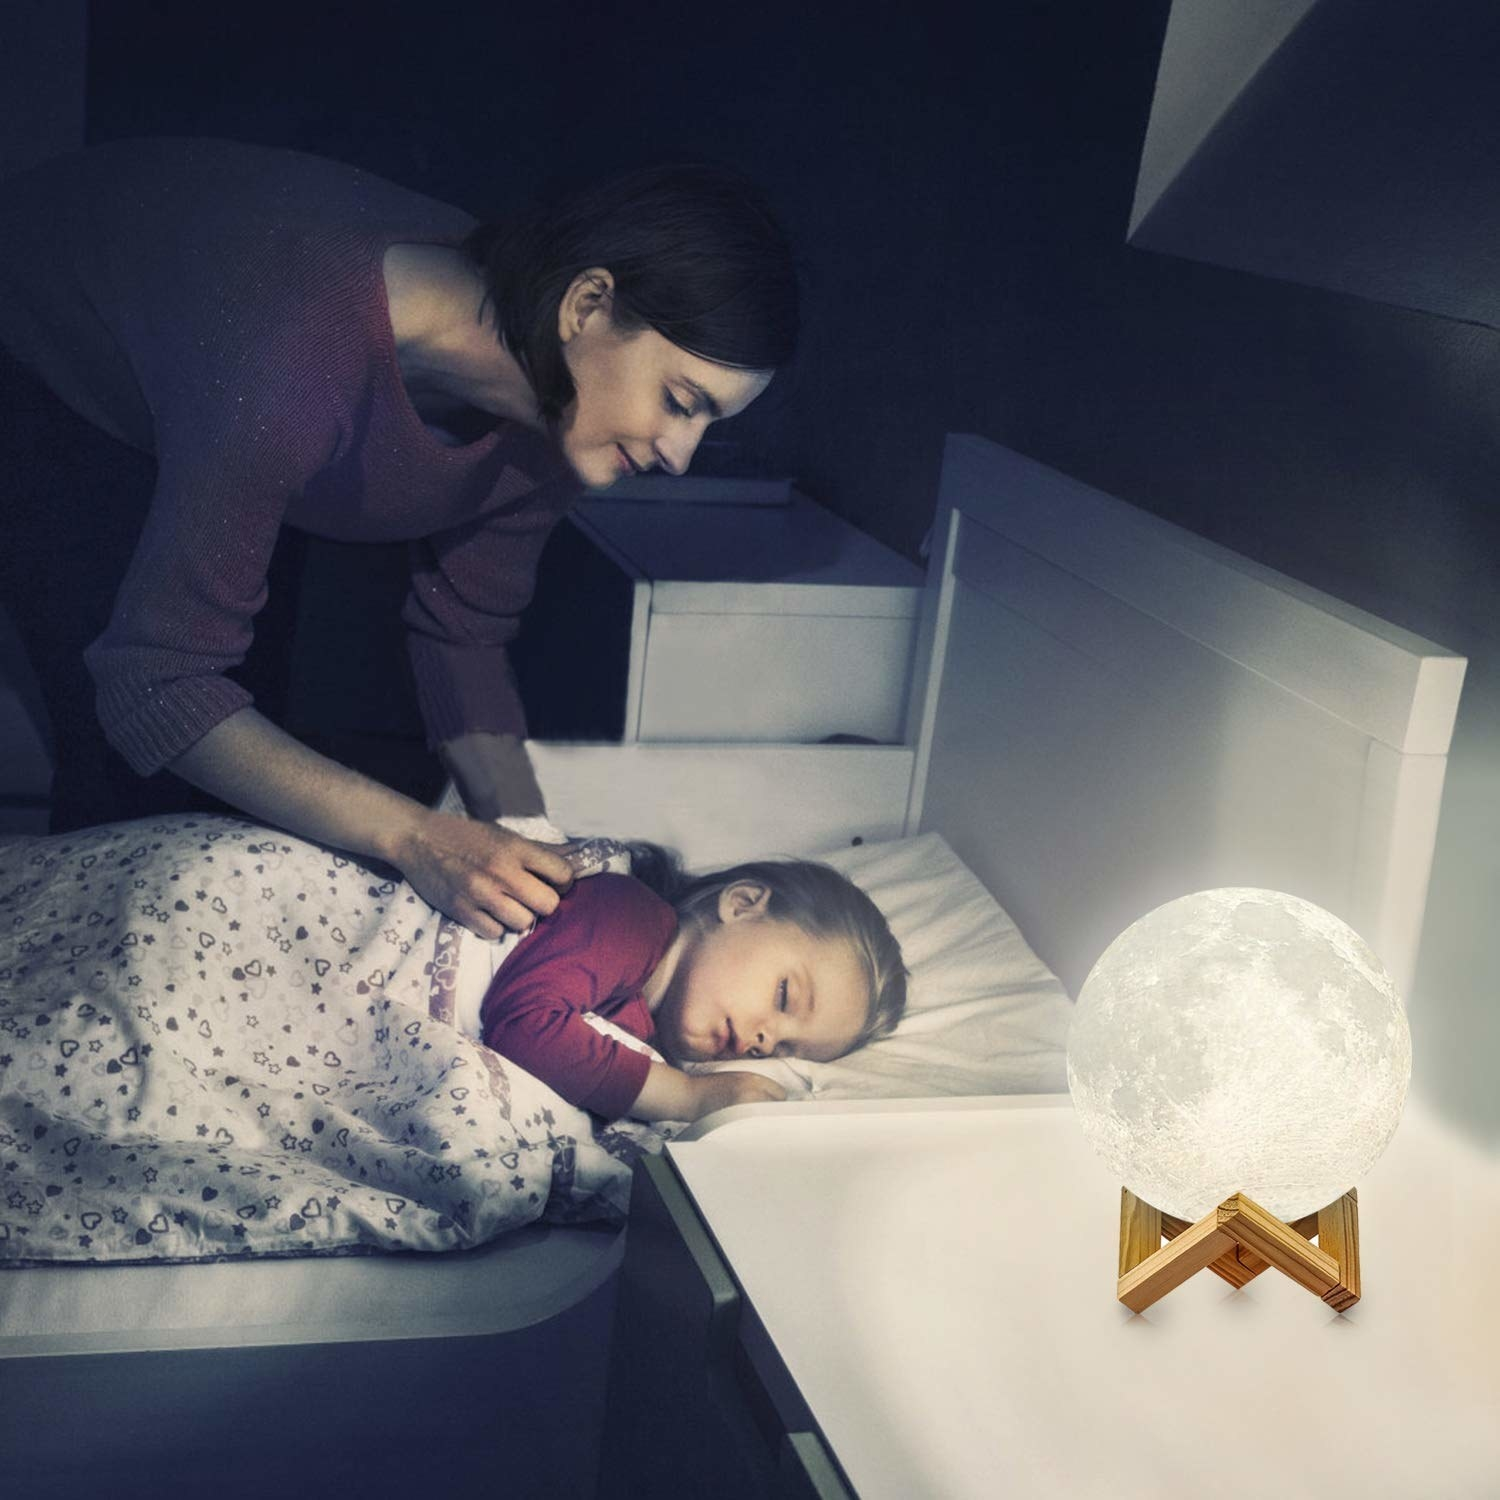 A mother putting the child to sleep with the moon lamp lit up on the bedside.